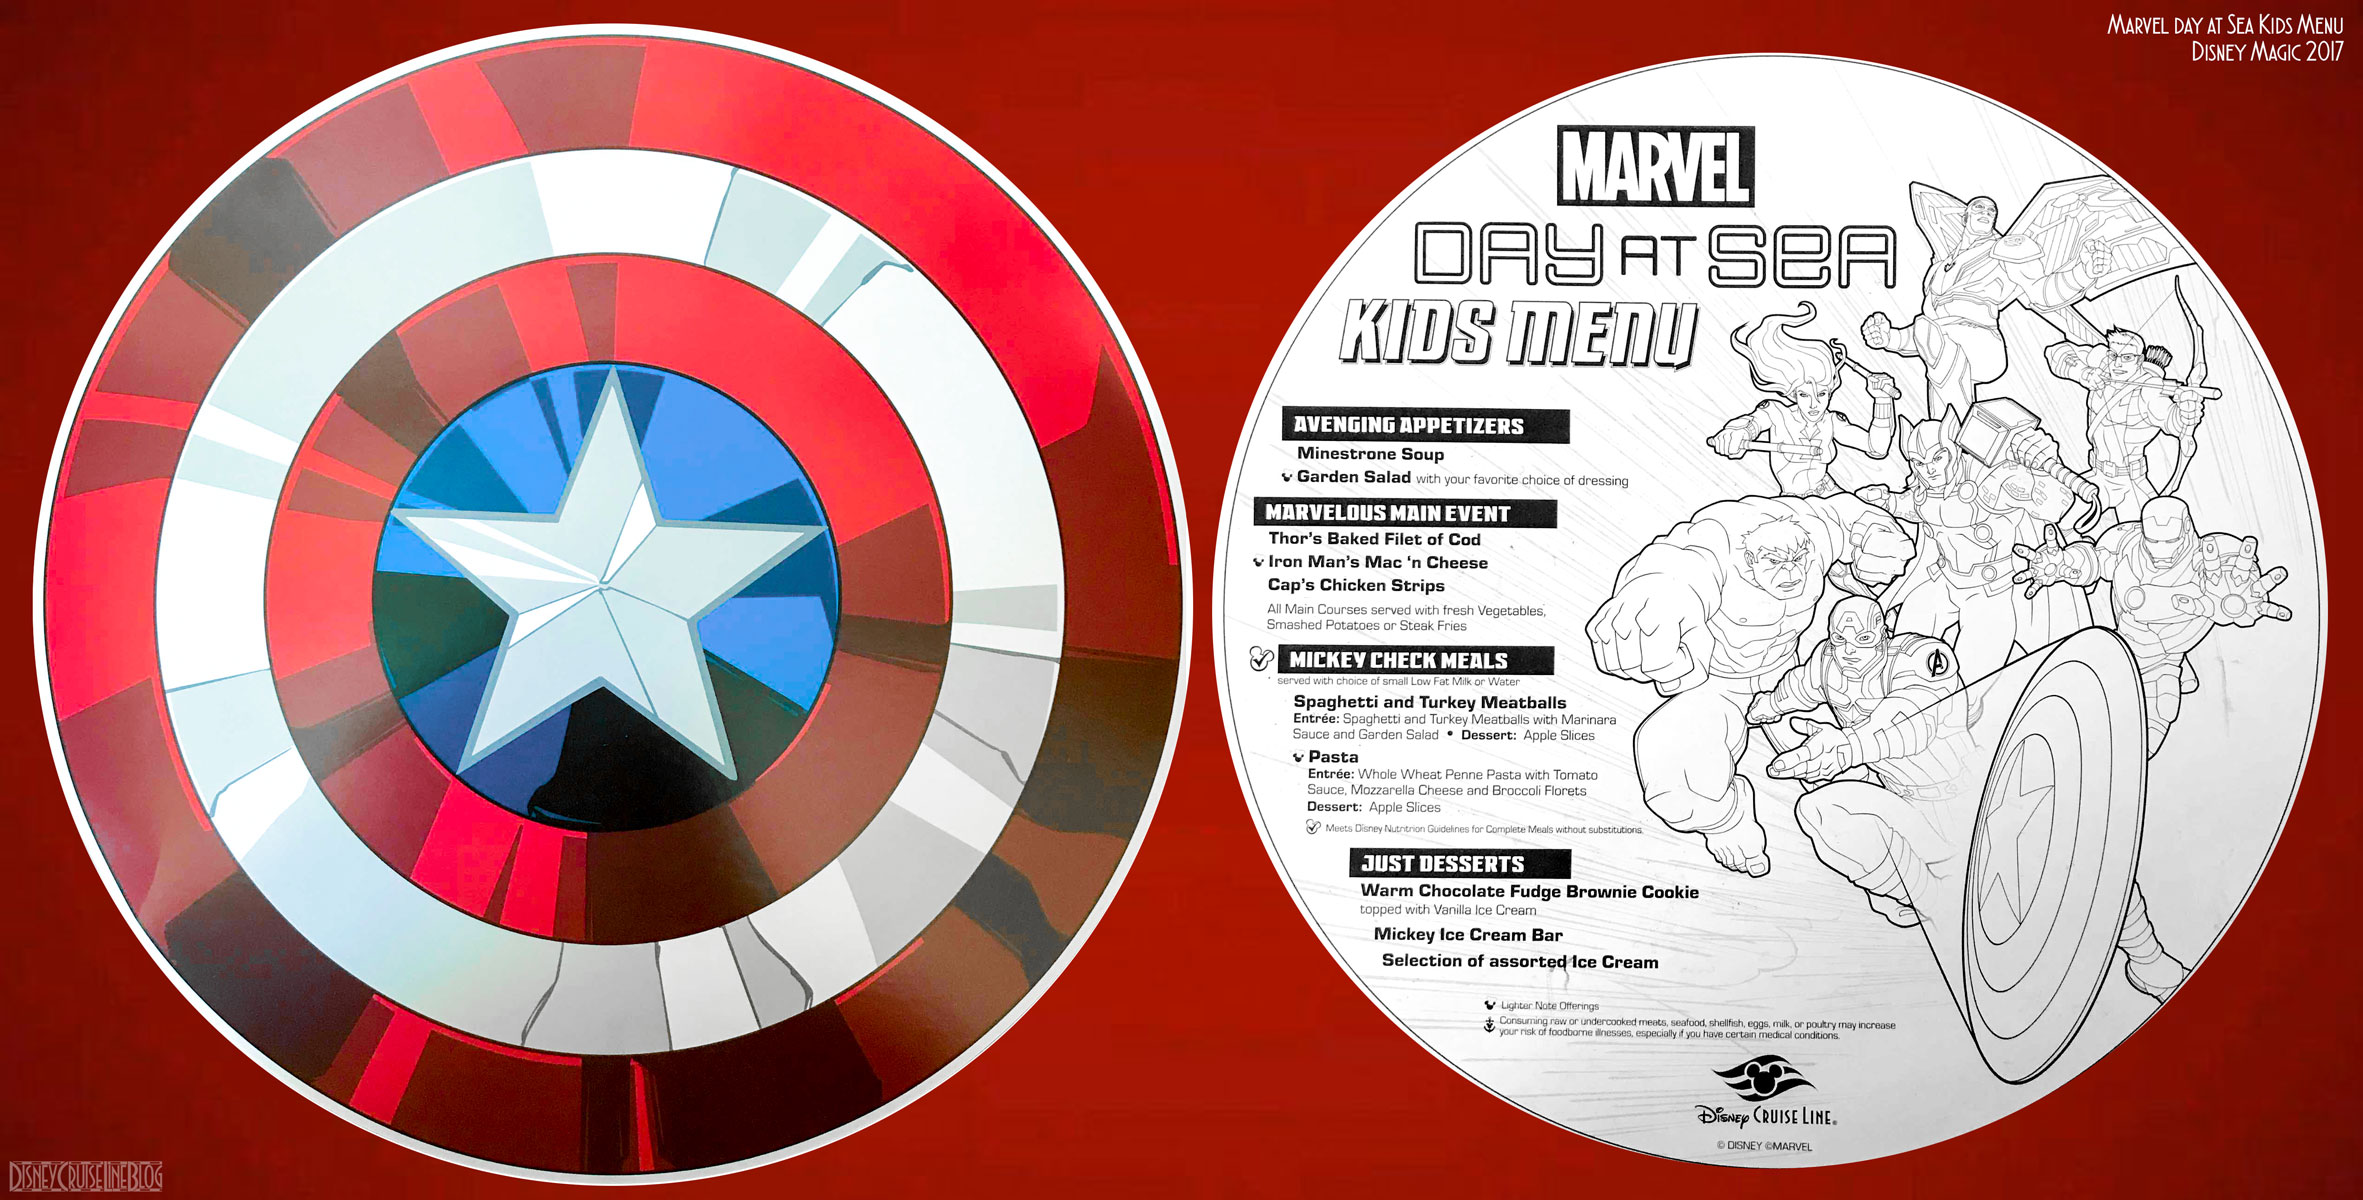 Marvel Day At Sea Menu The Disney Cruise Line Blog